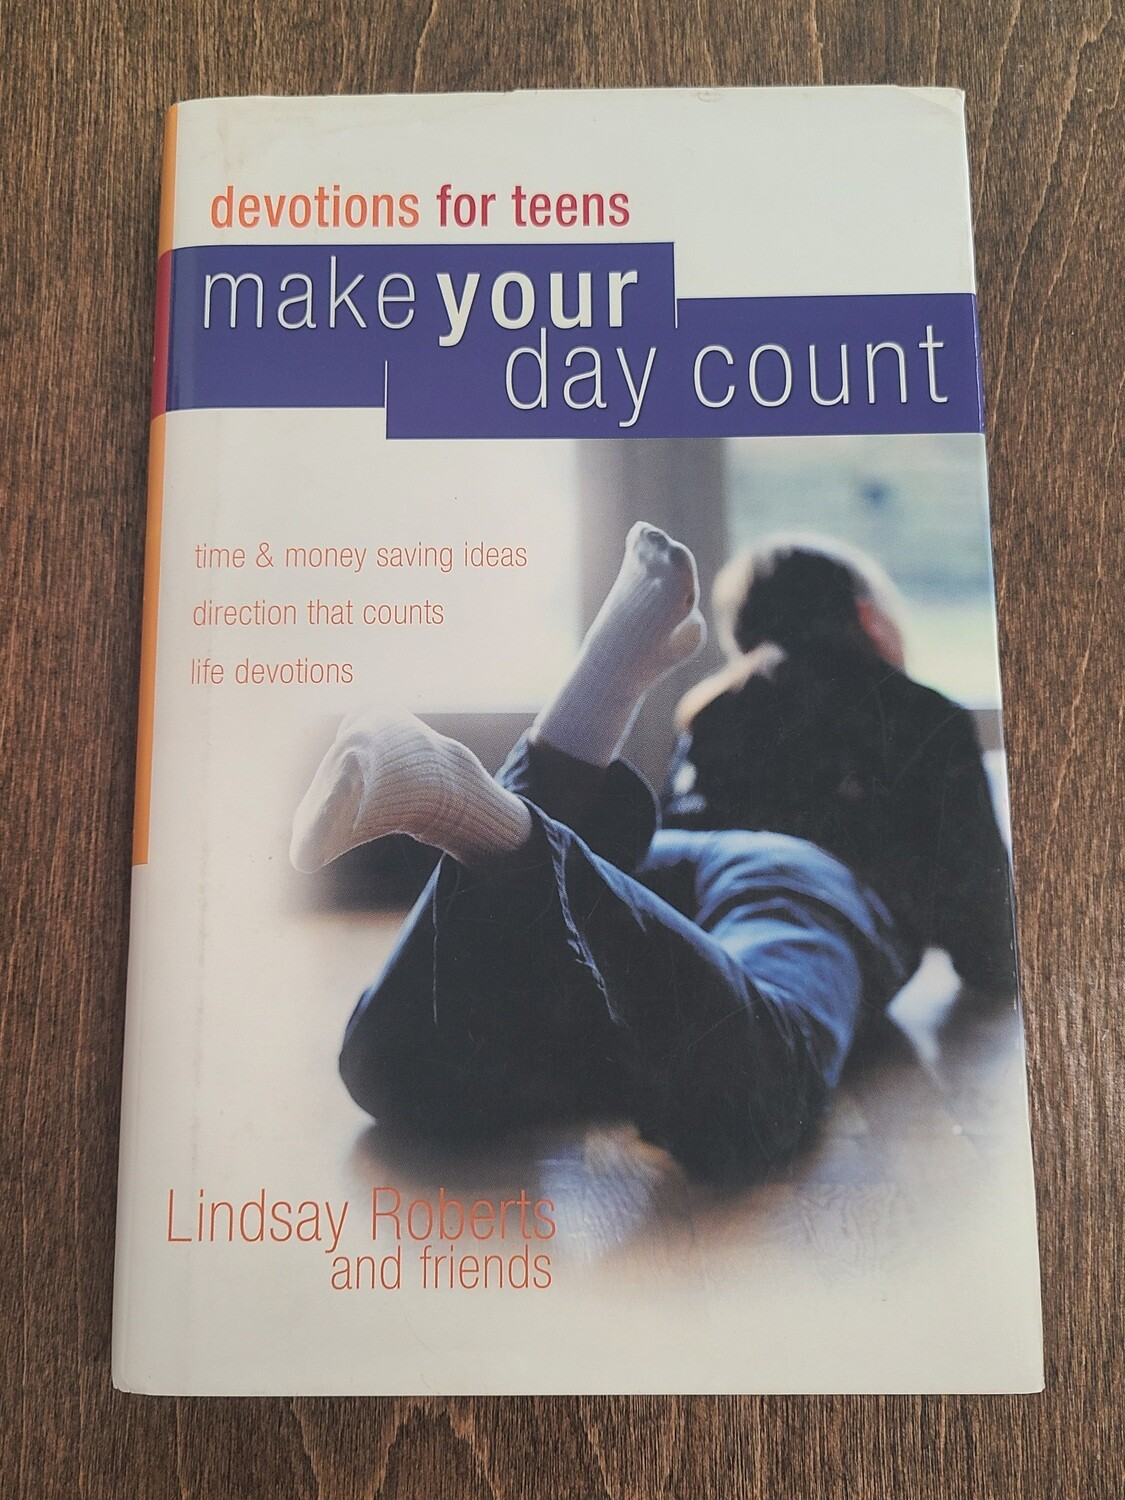 Make Your Day Count: Devotions for Teens by Lindsay Roberts and Friends